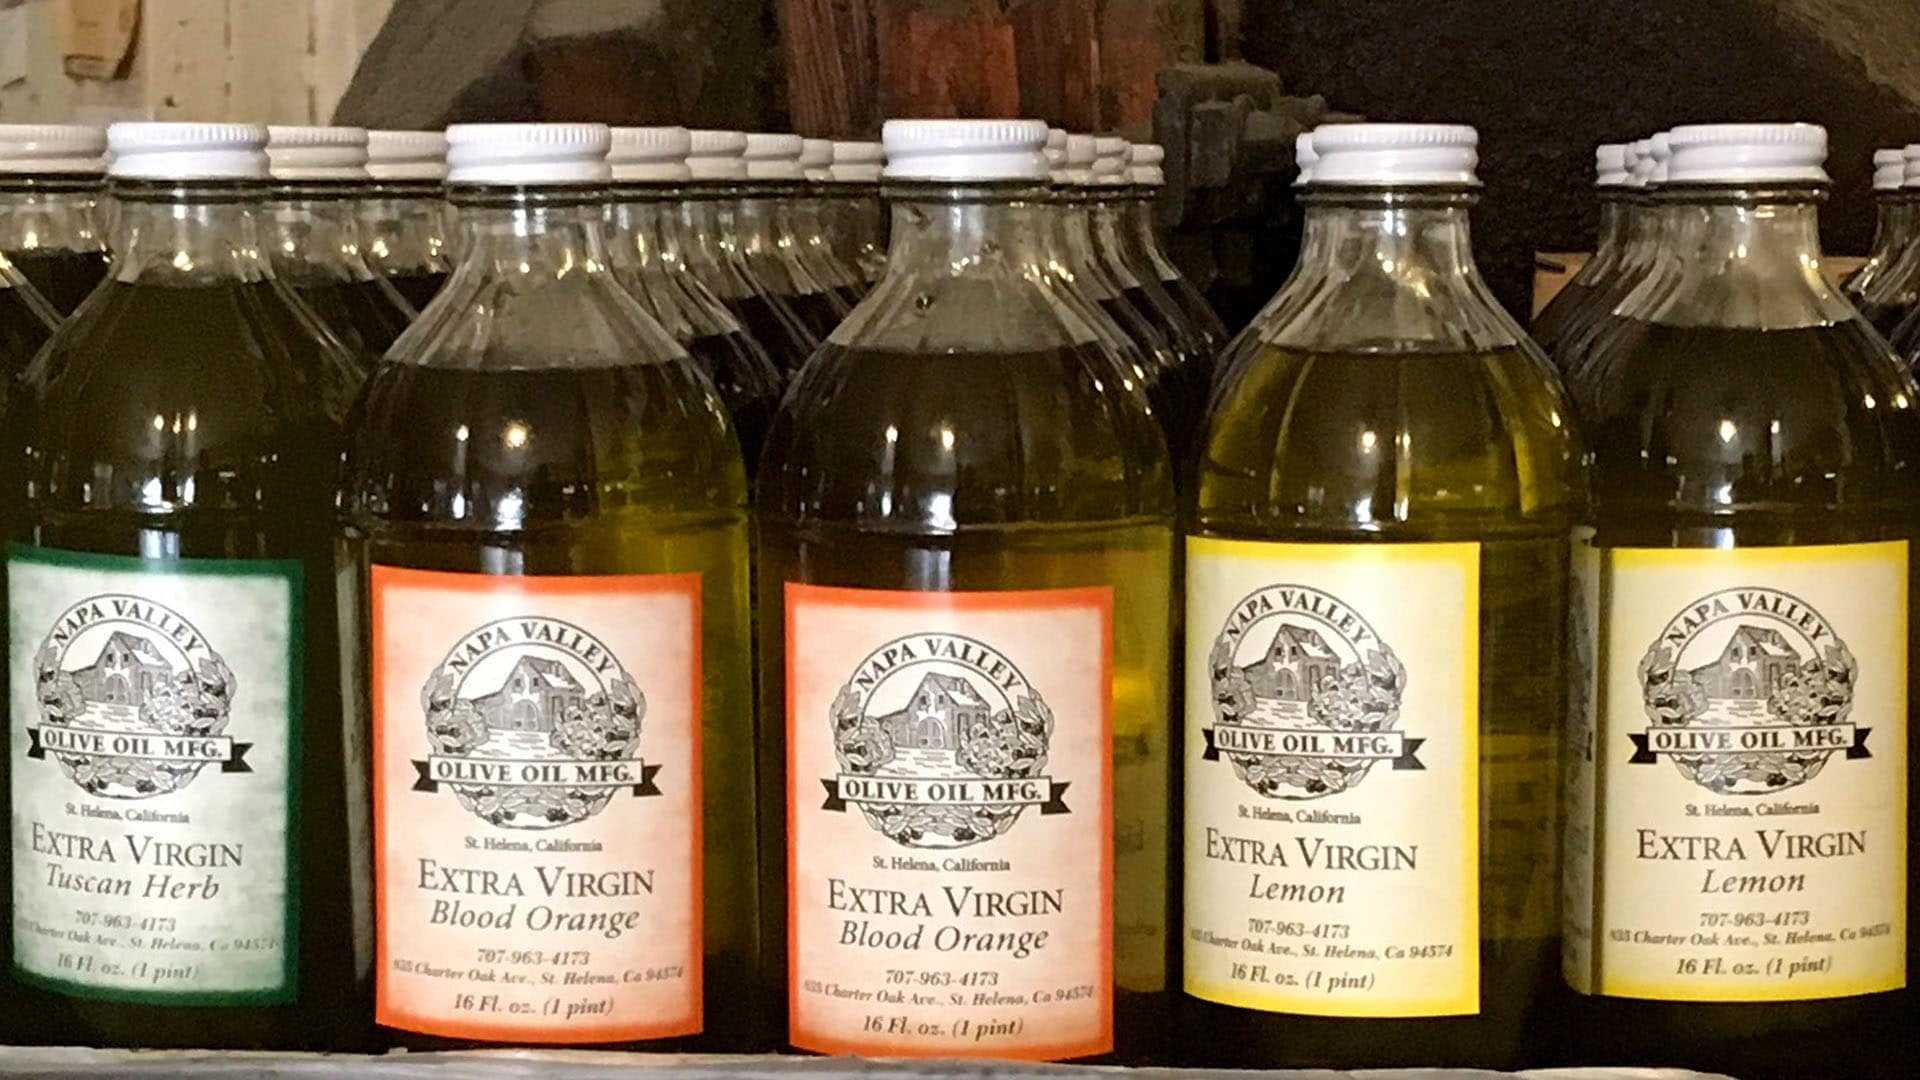 Napa Valley Olive Oil Manufacturing Company has a large selection of flavored olive oils.